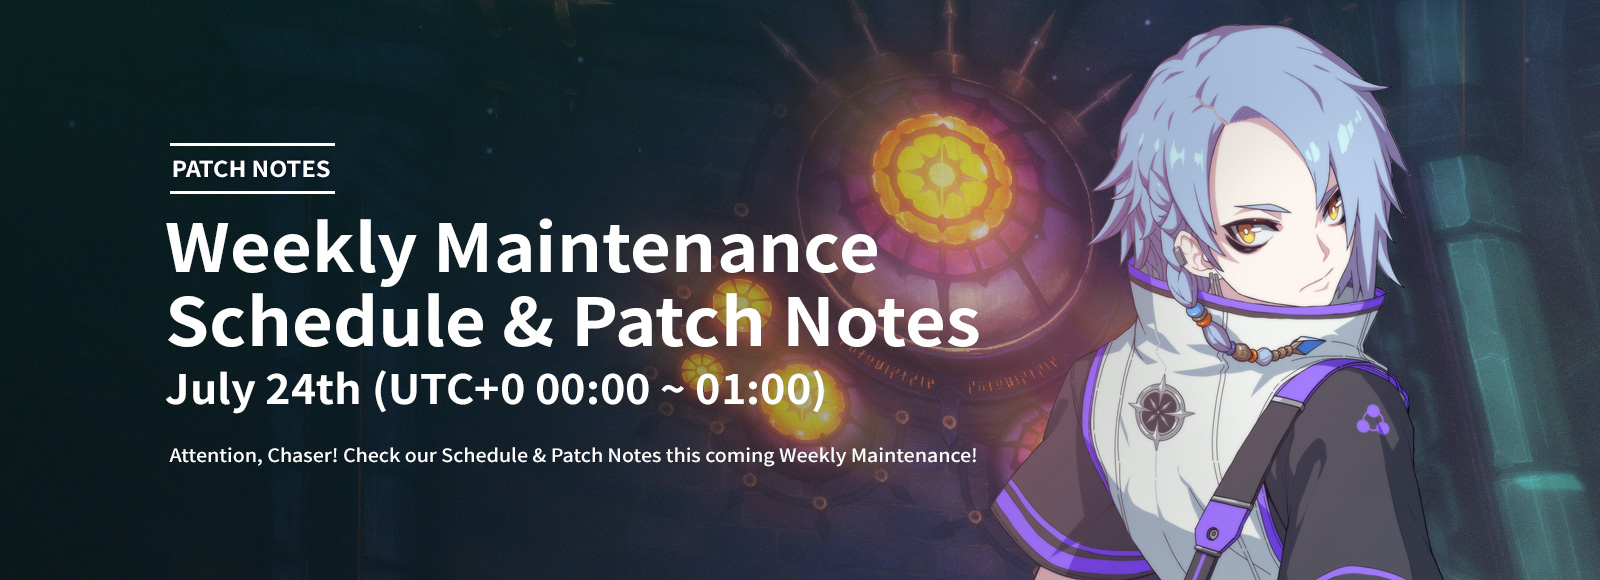 July 24th Weekly Maintenance Schedule & Patch Notes